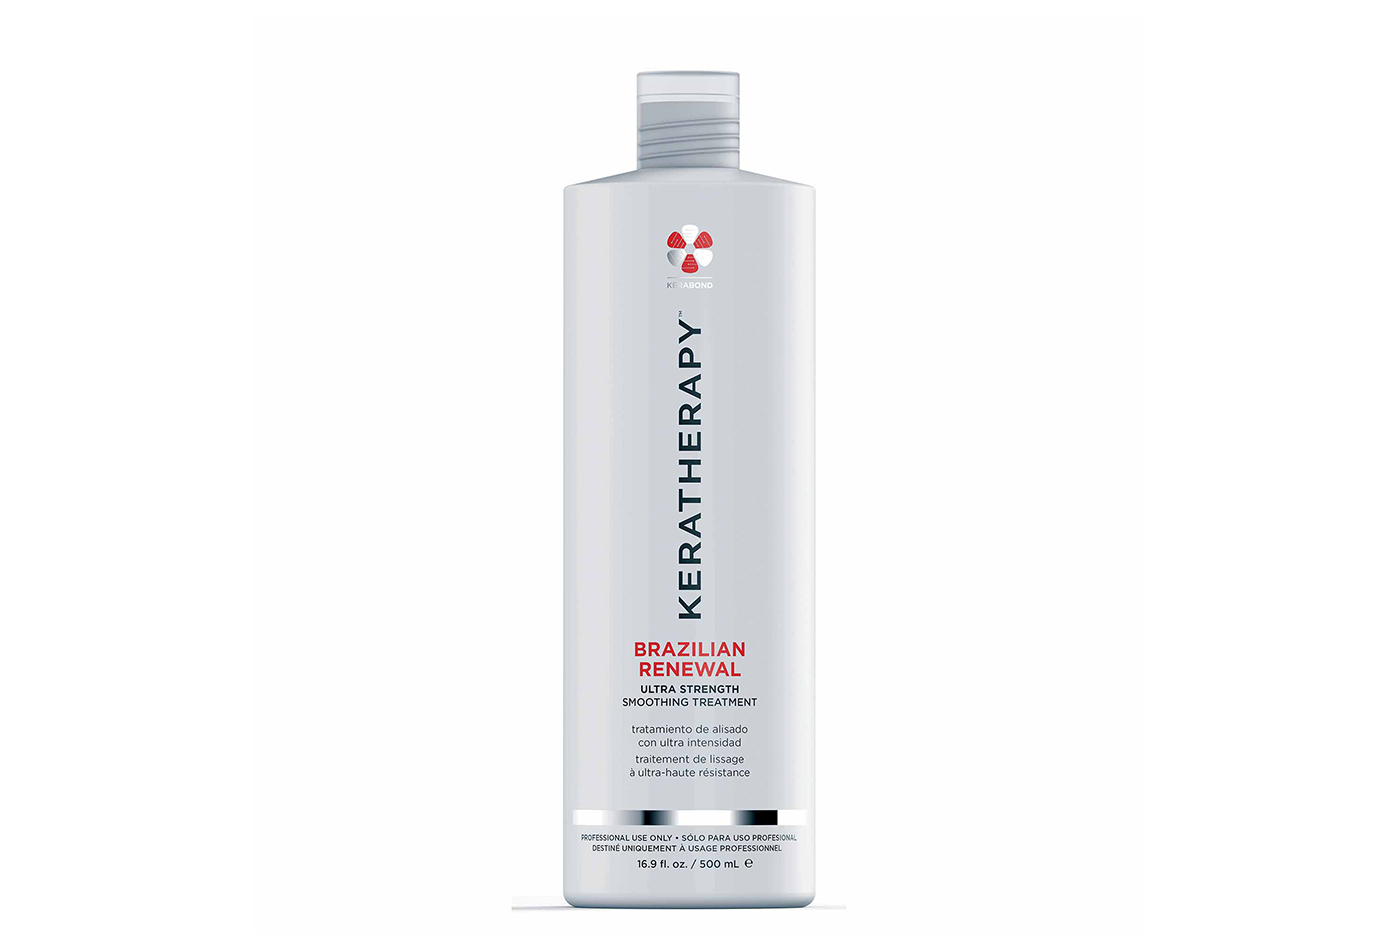 Keratherapy Brazilian Renewal Ultra Strength Keratin Smoothing Treatment